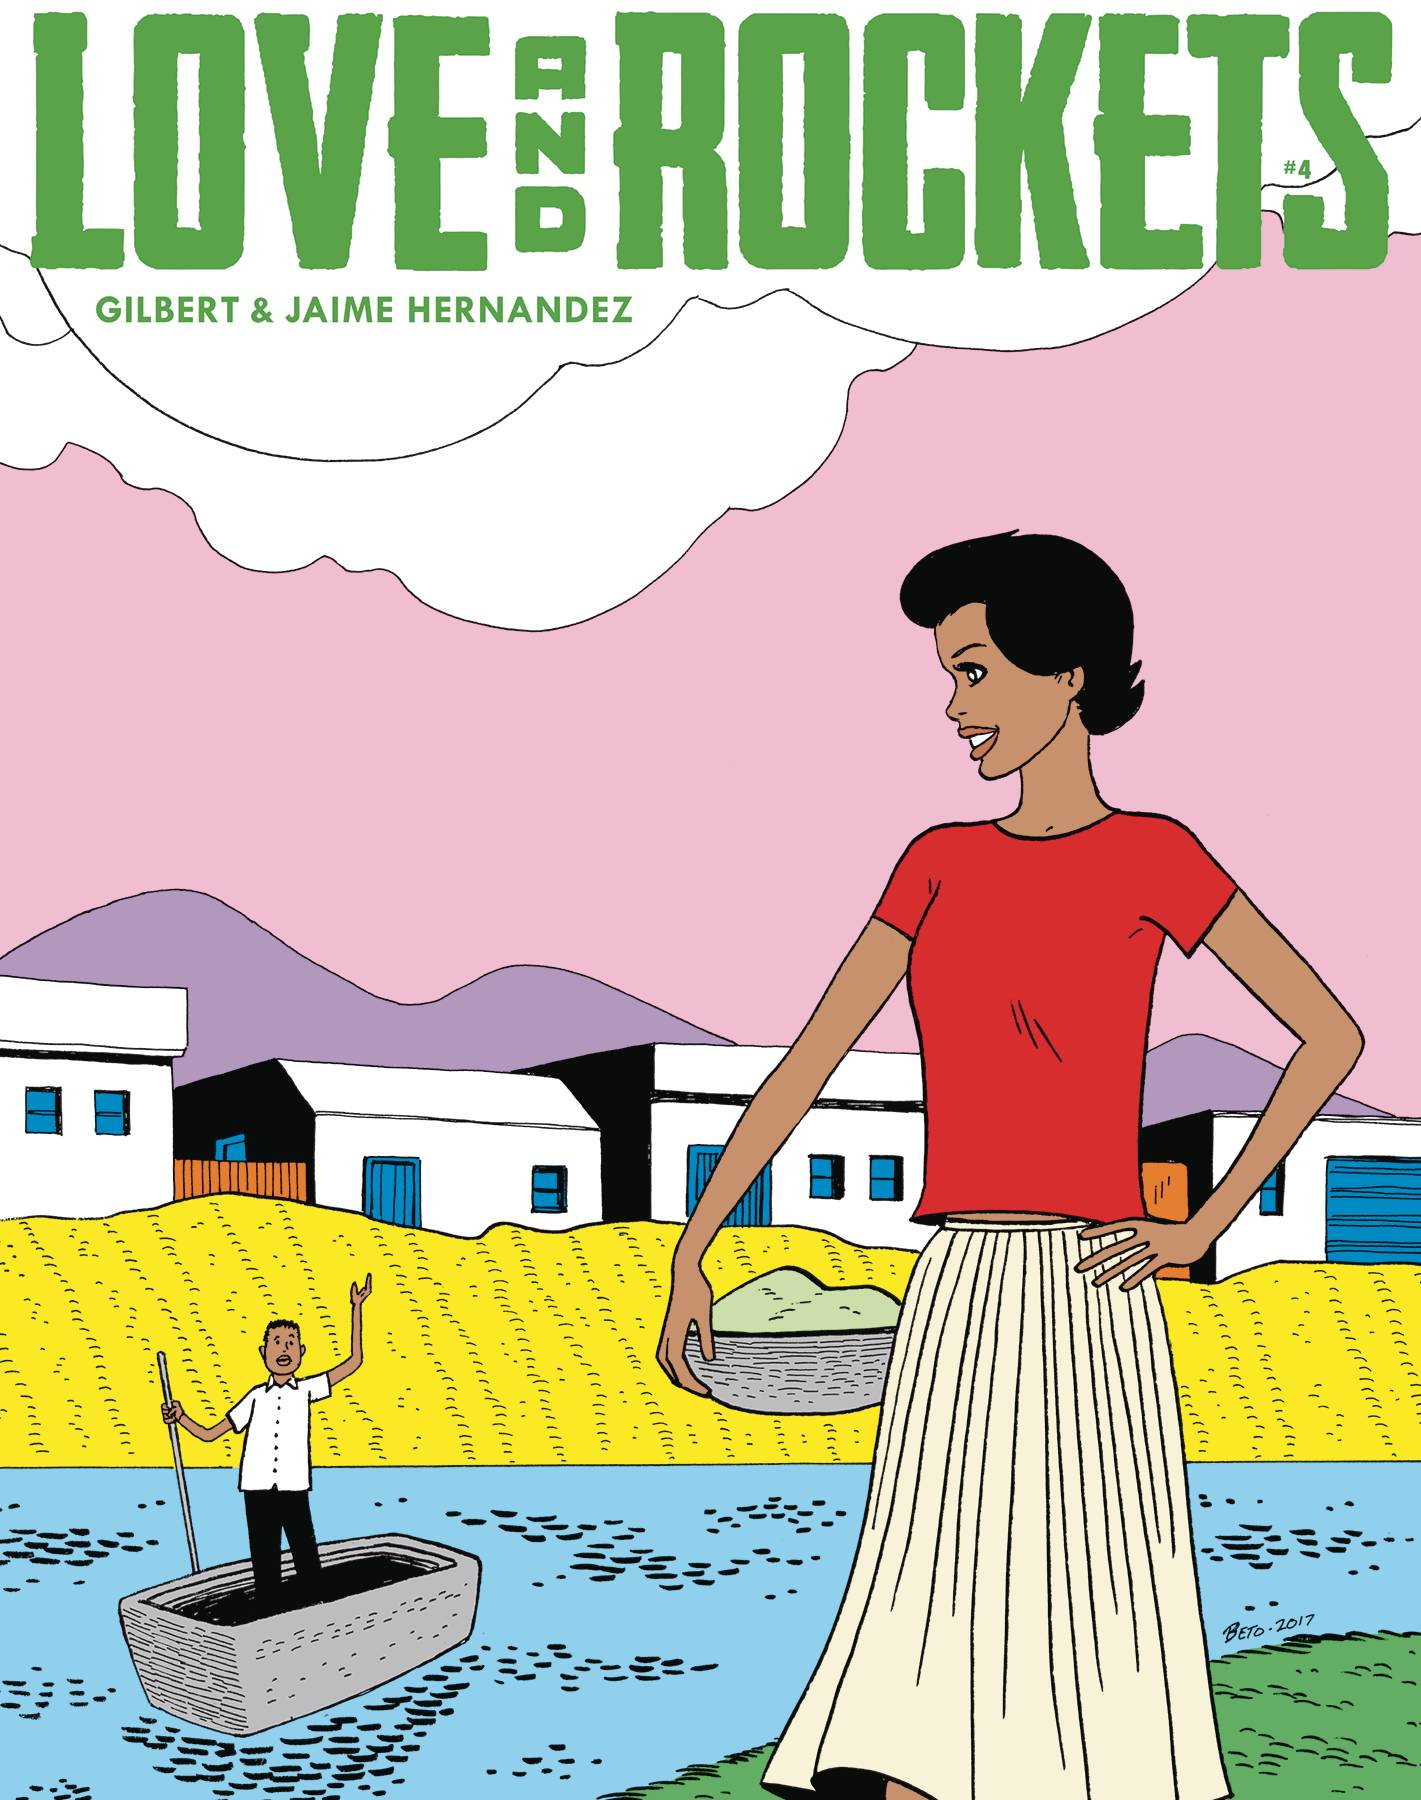 LOVE & ROCKETS MAGAZINE #4